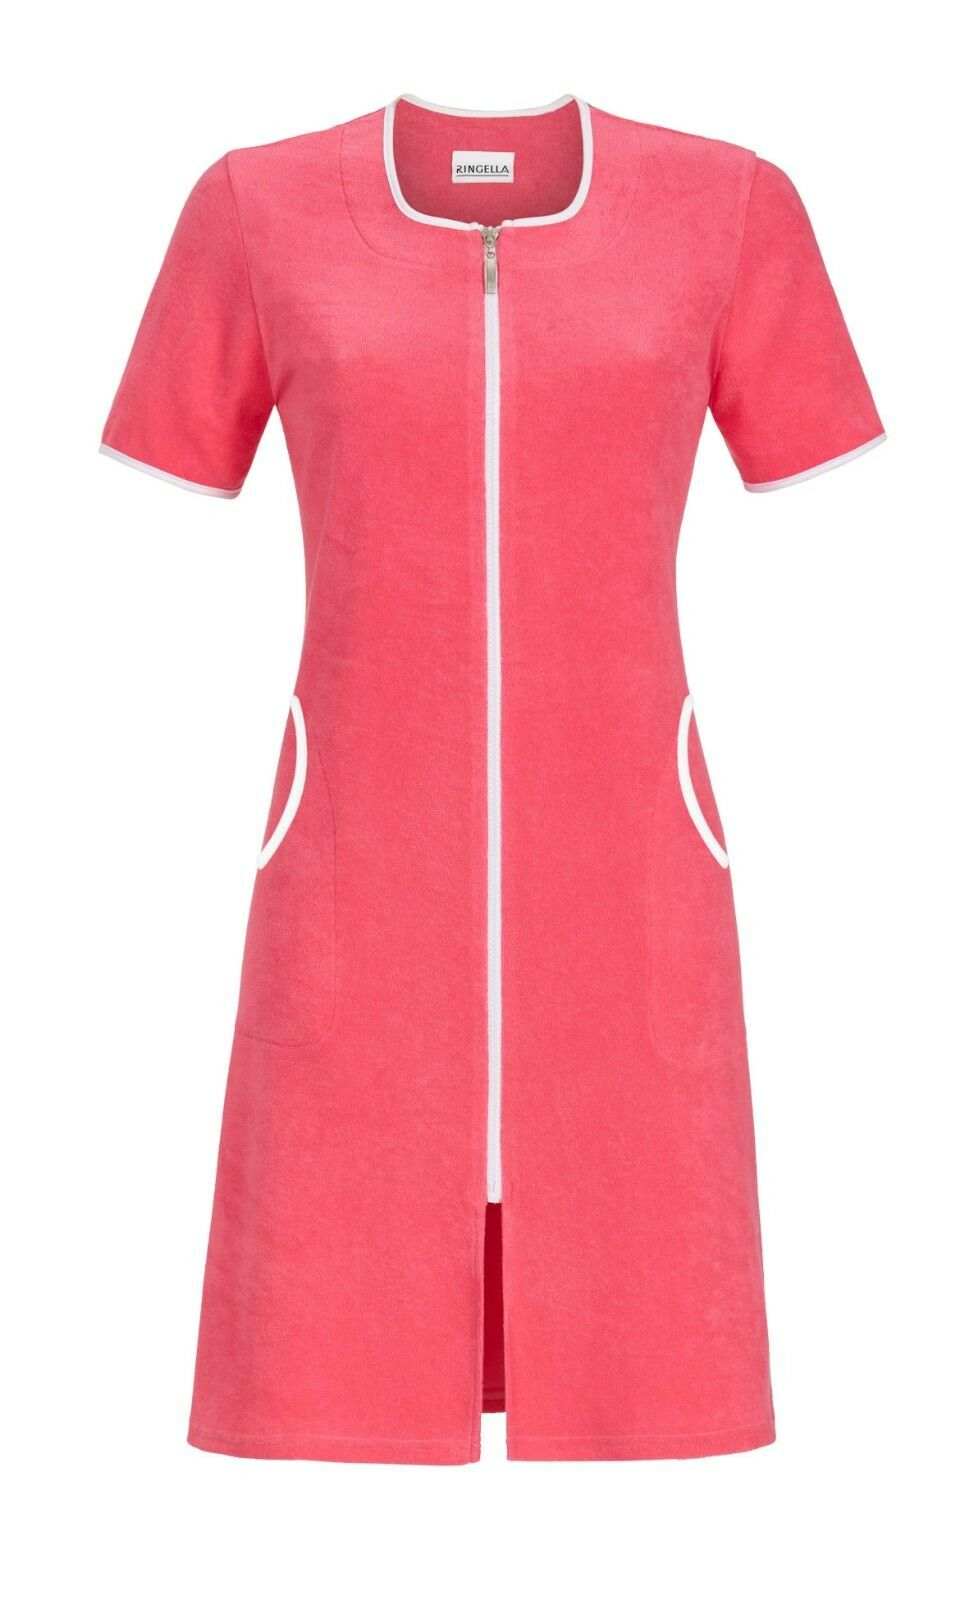 DRESSING GOWN RINGELLA 80% COTON-20% POLYESTER Red color T. 38 40 42 44 46